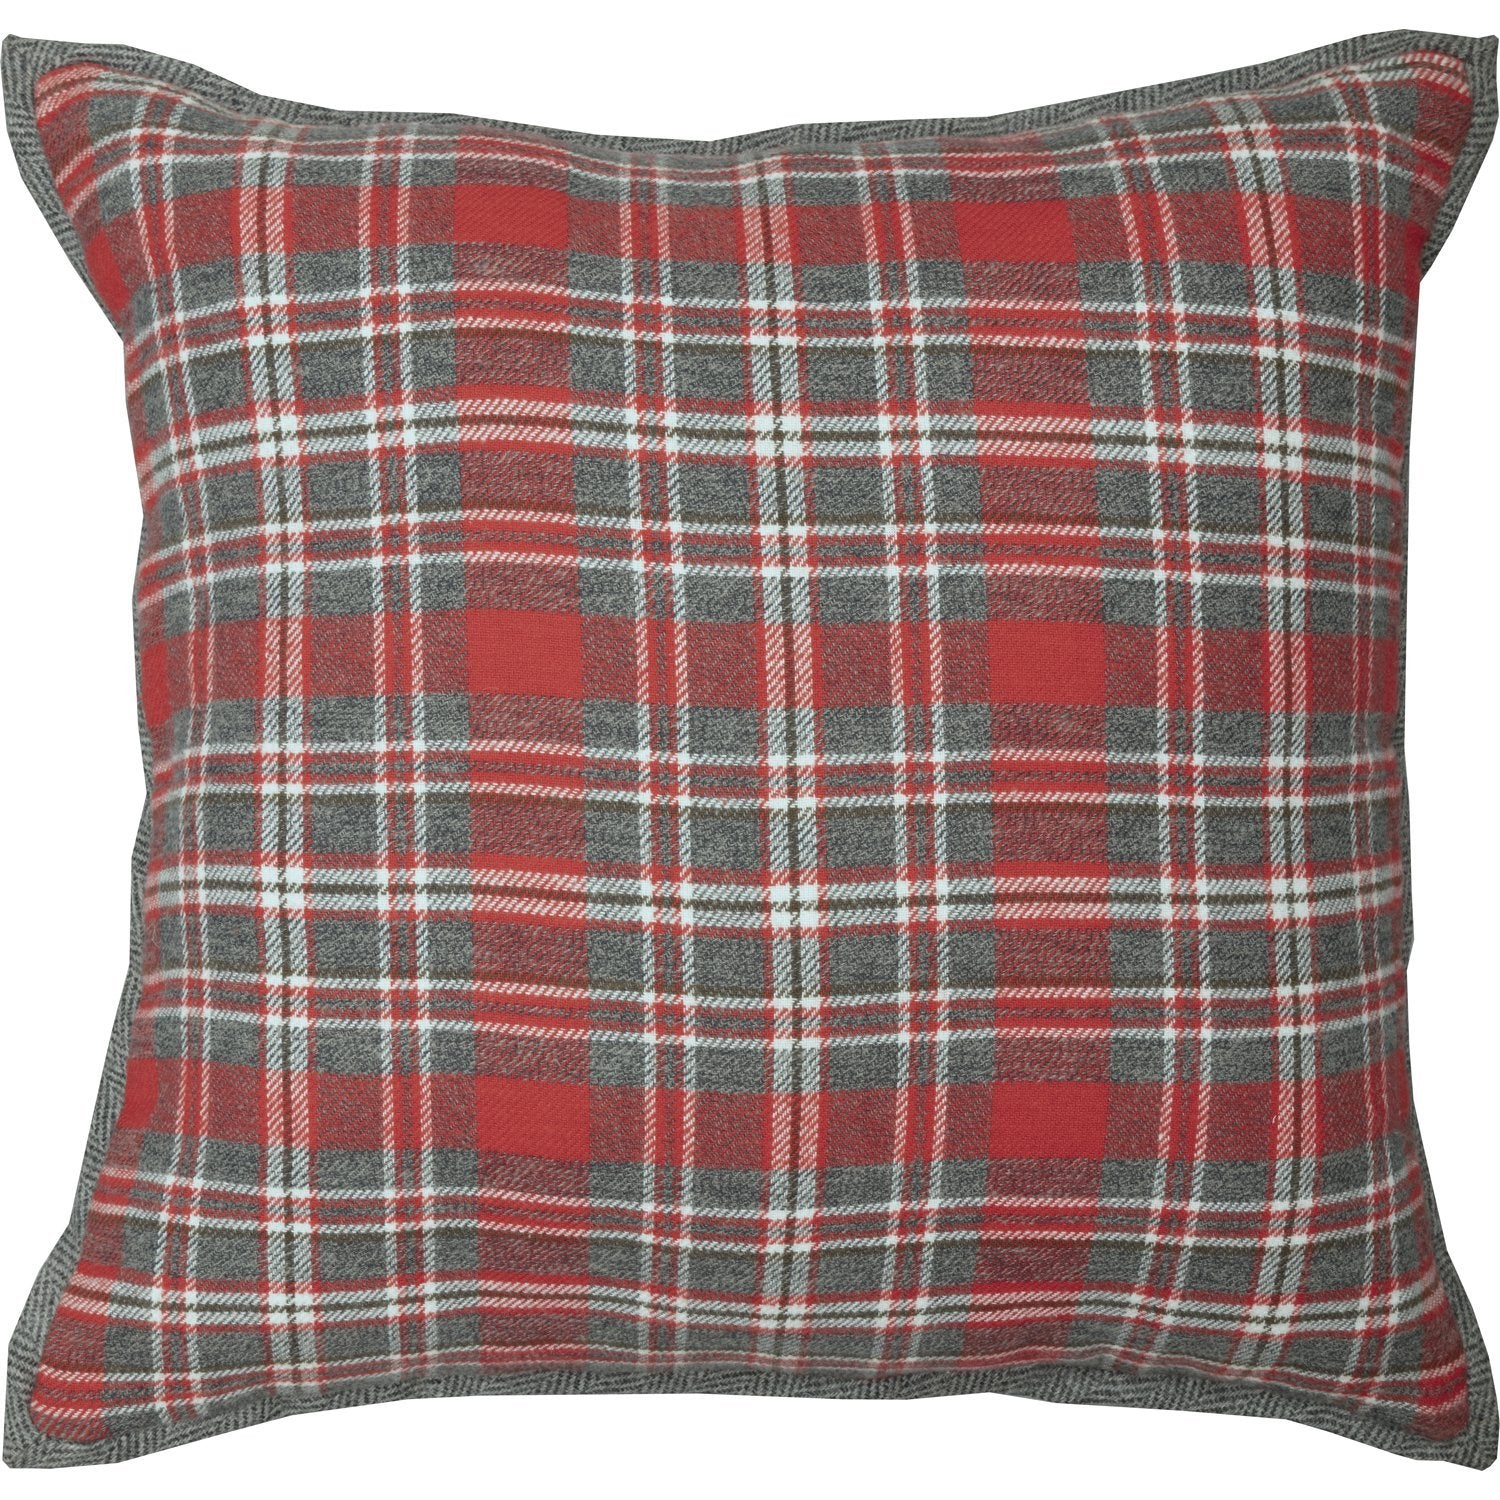 Anderson Plaid Pillow.